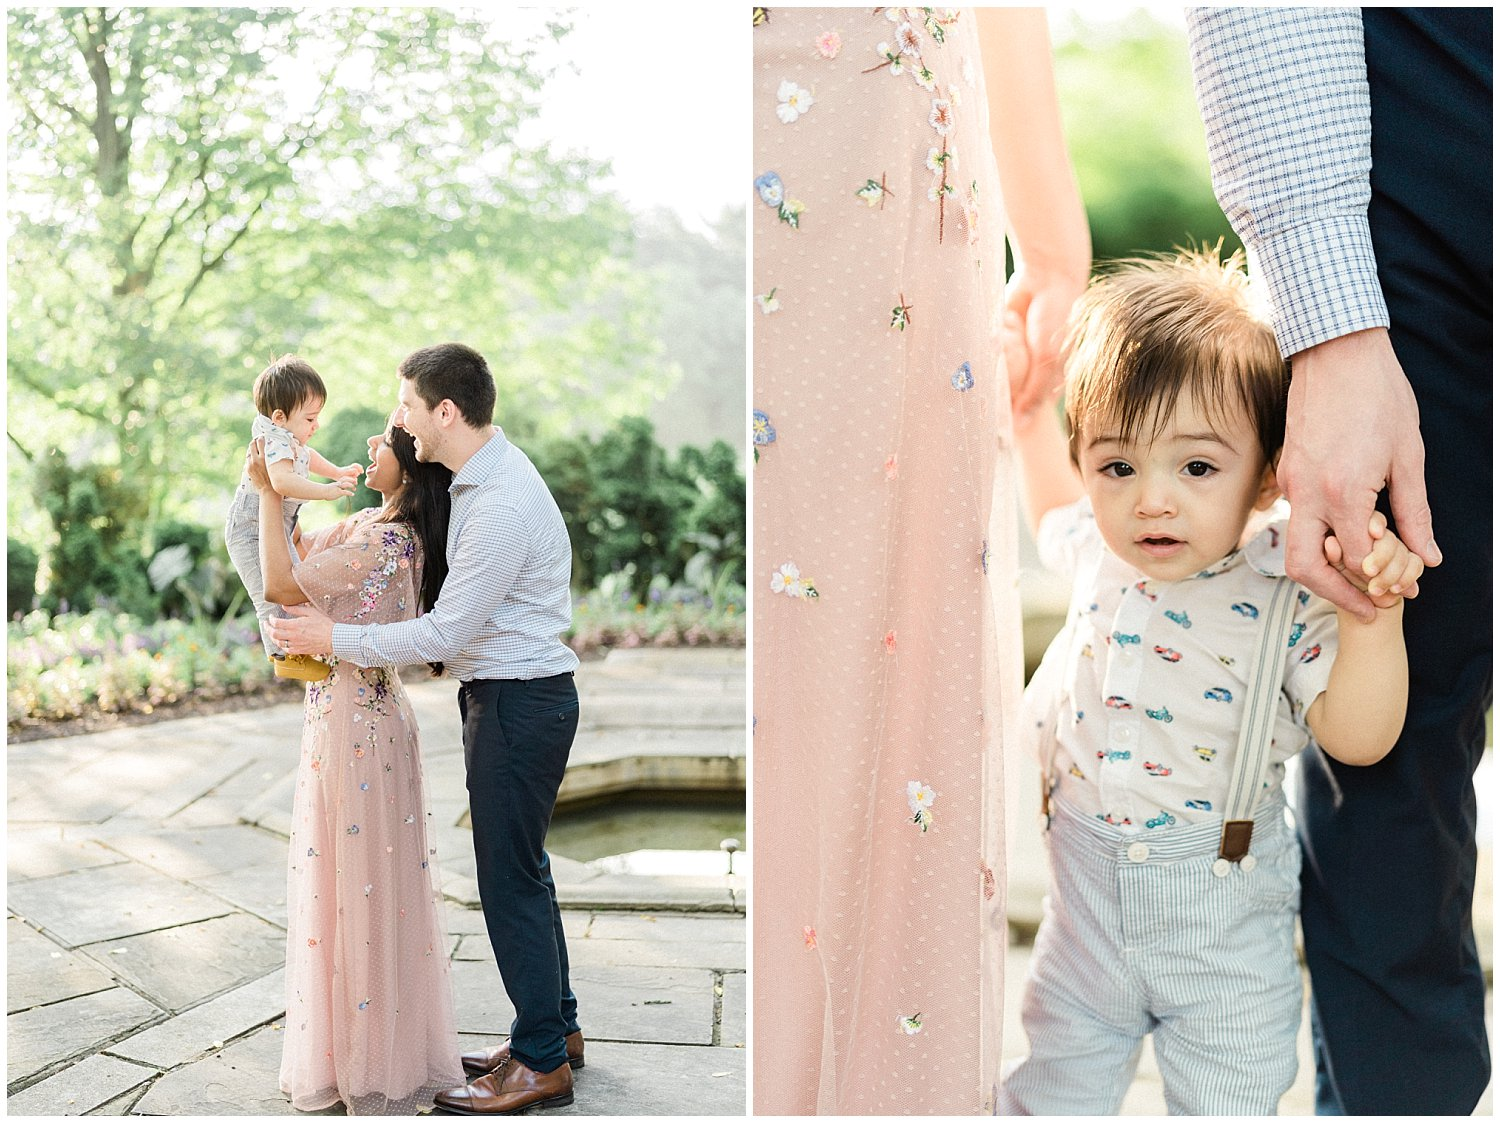 Glenview Mansion at Rockville Civic Center family session by Winnie Dora Photography